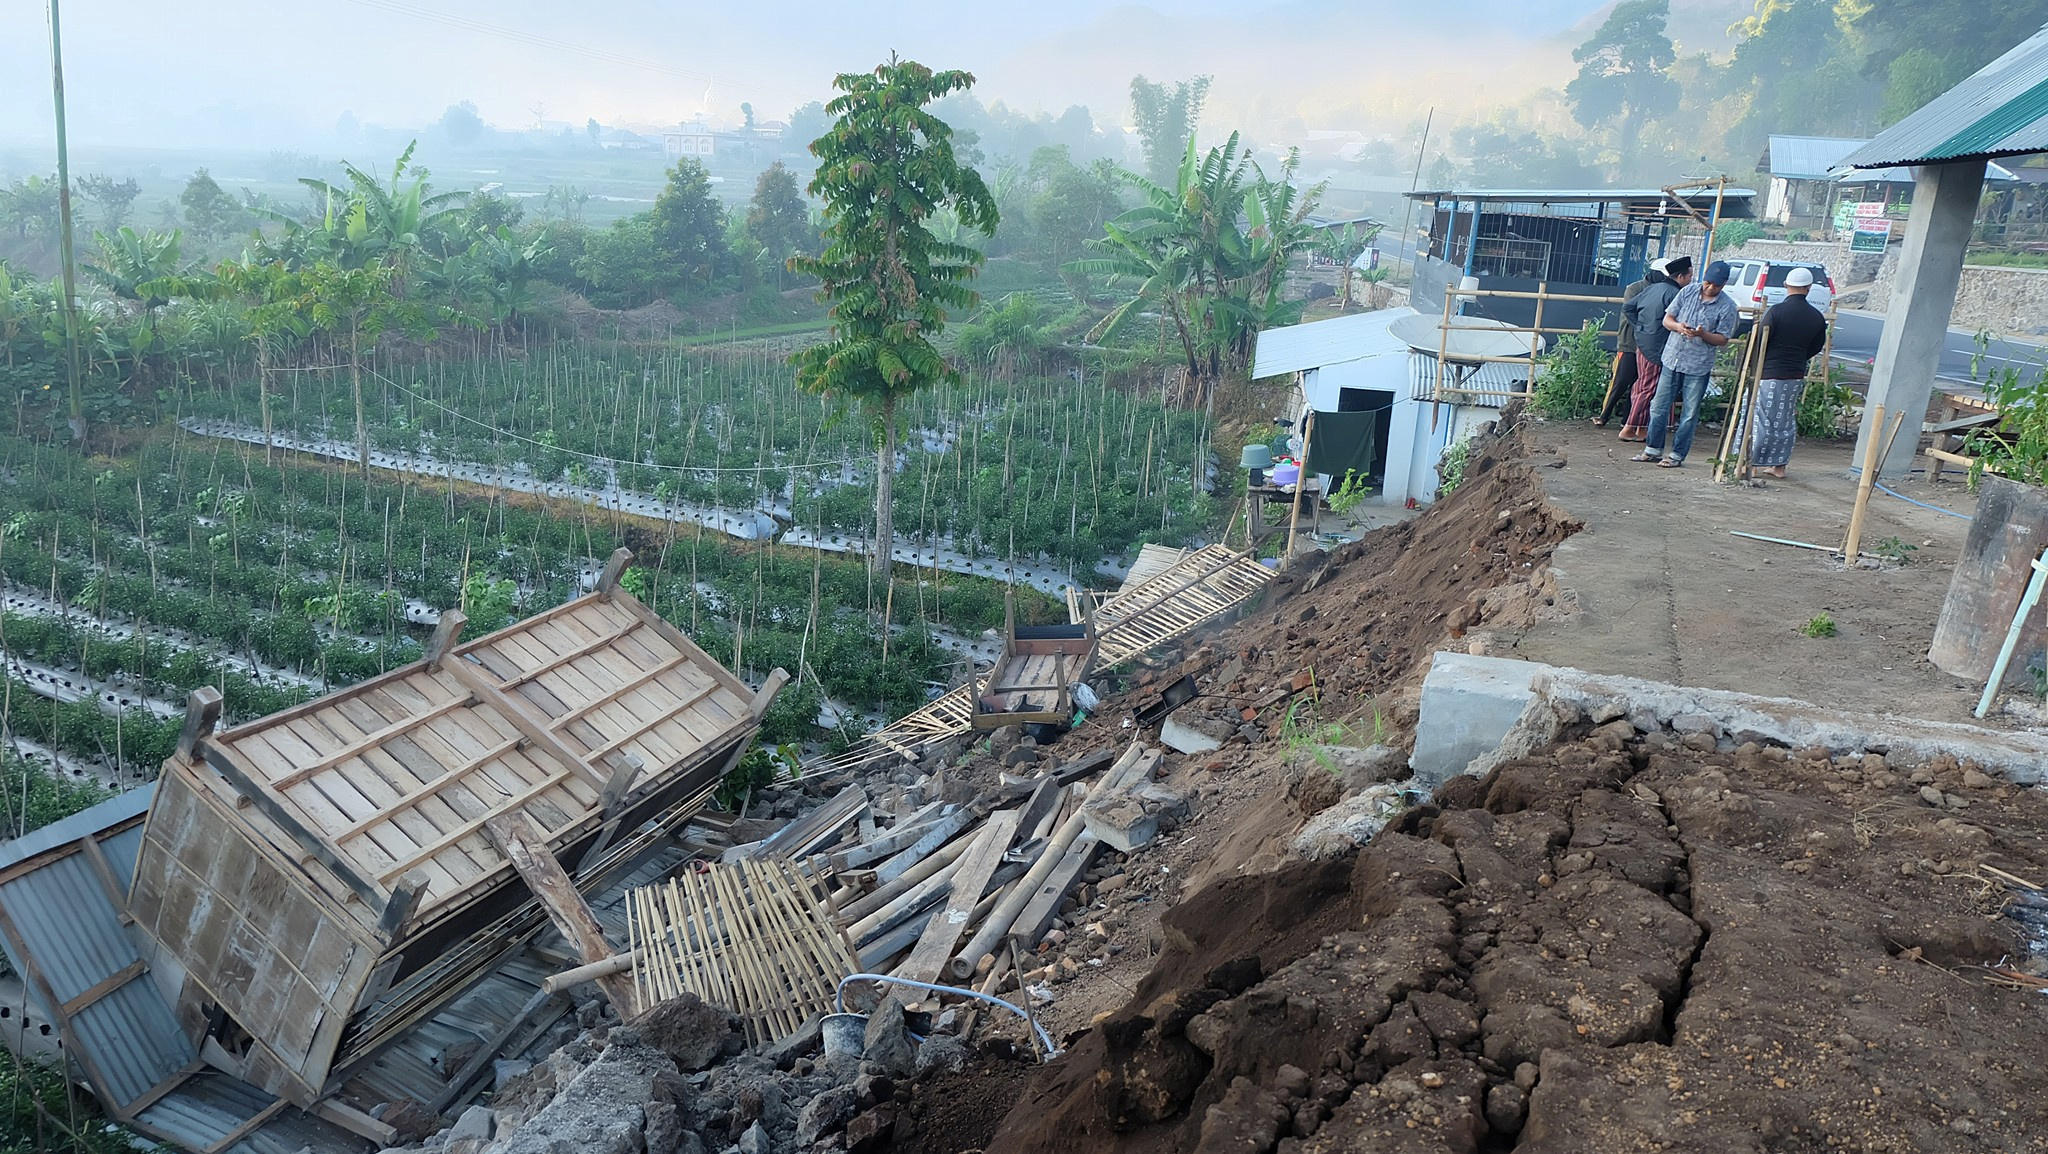 indonesia-earthquake-disaster-2018-westherald